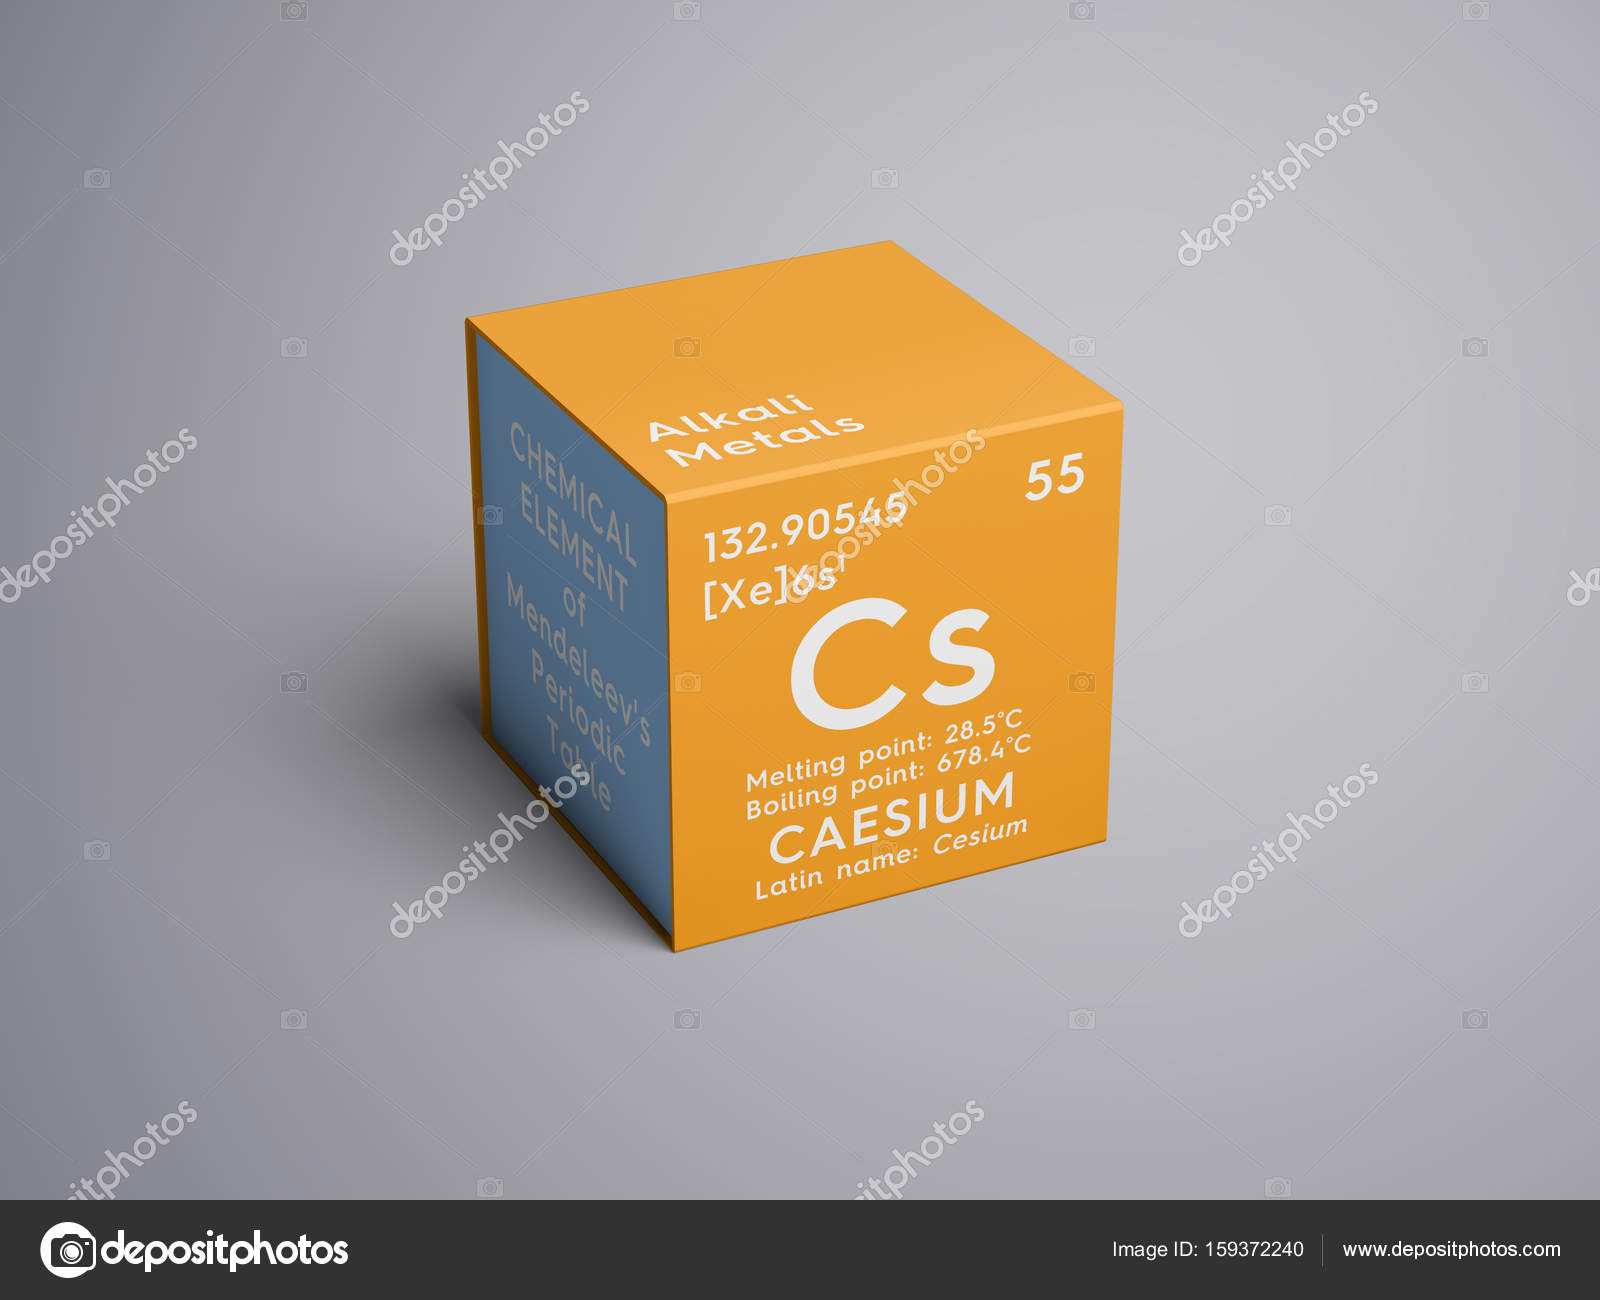 Caesium cesium alkali metals chemical element of mendeleevs caesium cesium alkali metals chemical element of mendeleevs periodic table caesium in square cube creative concept photo by sanches812 gamestrikefo Gallery